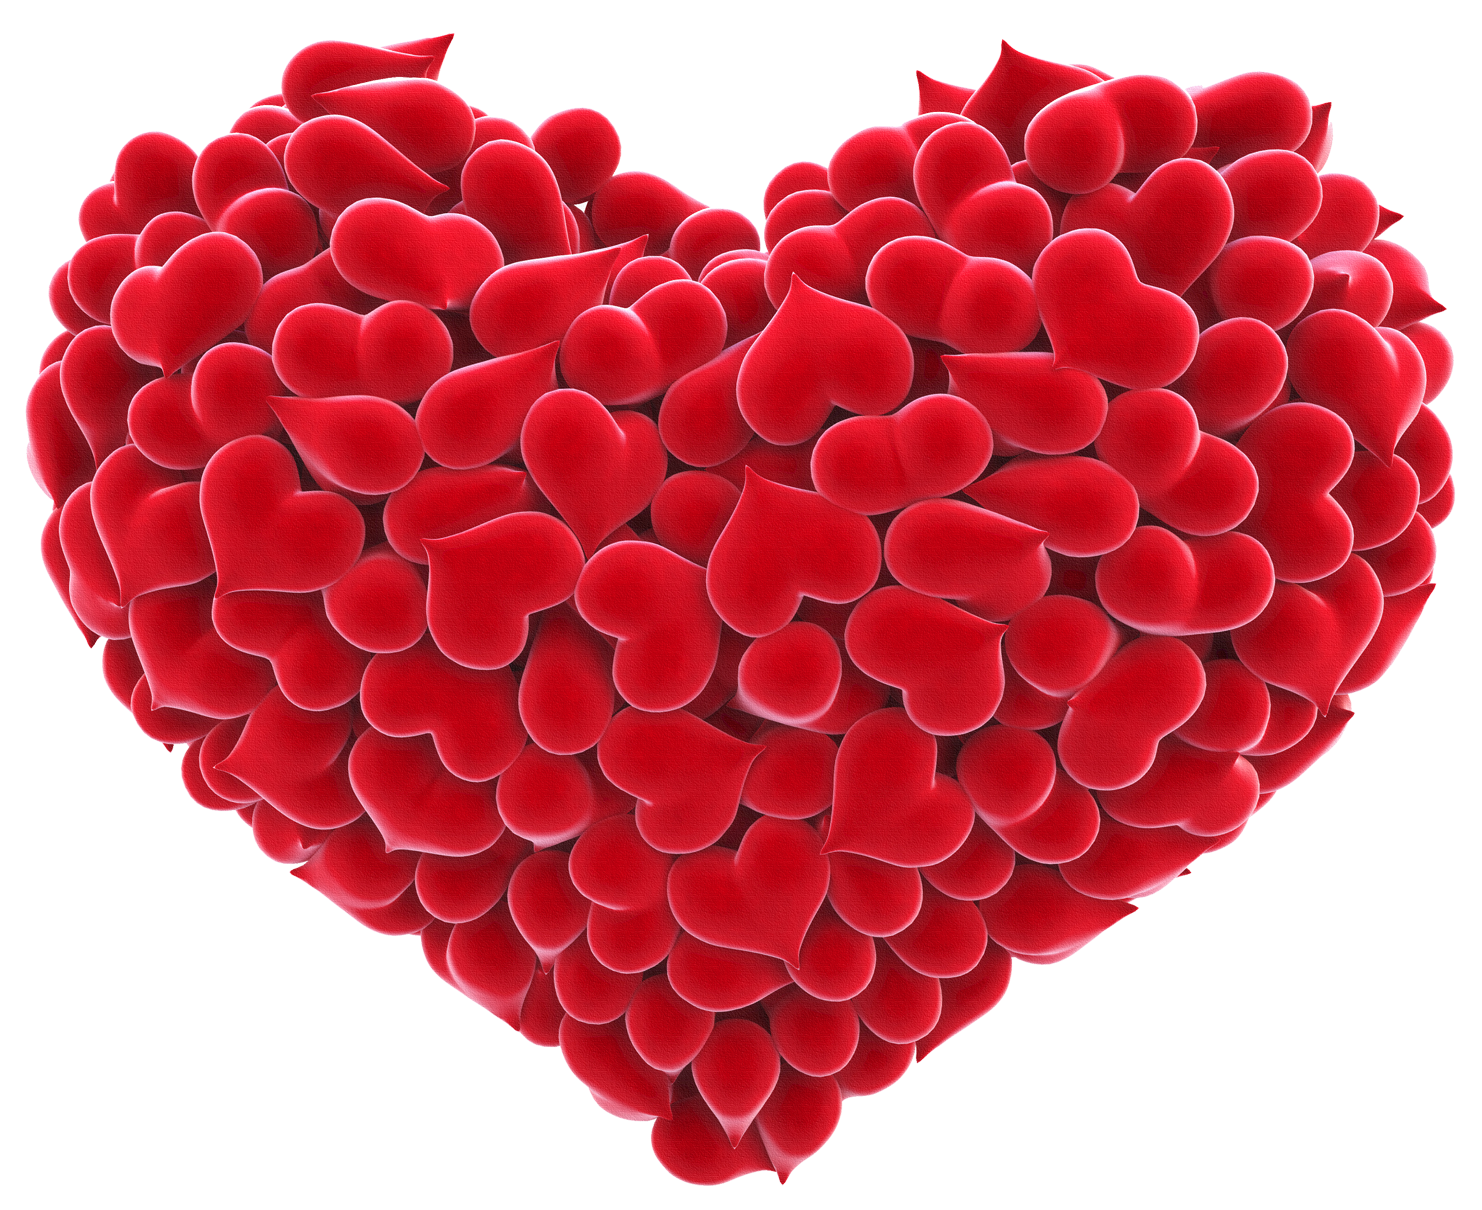 Heart clipart fruit. Png mini hearts